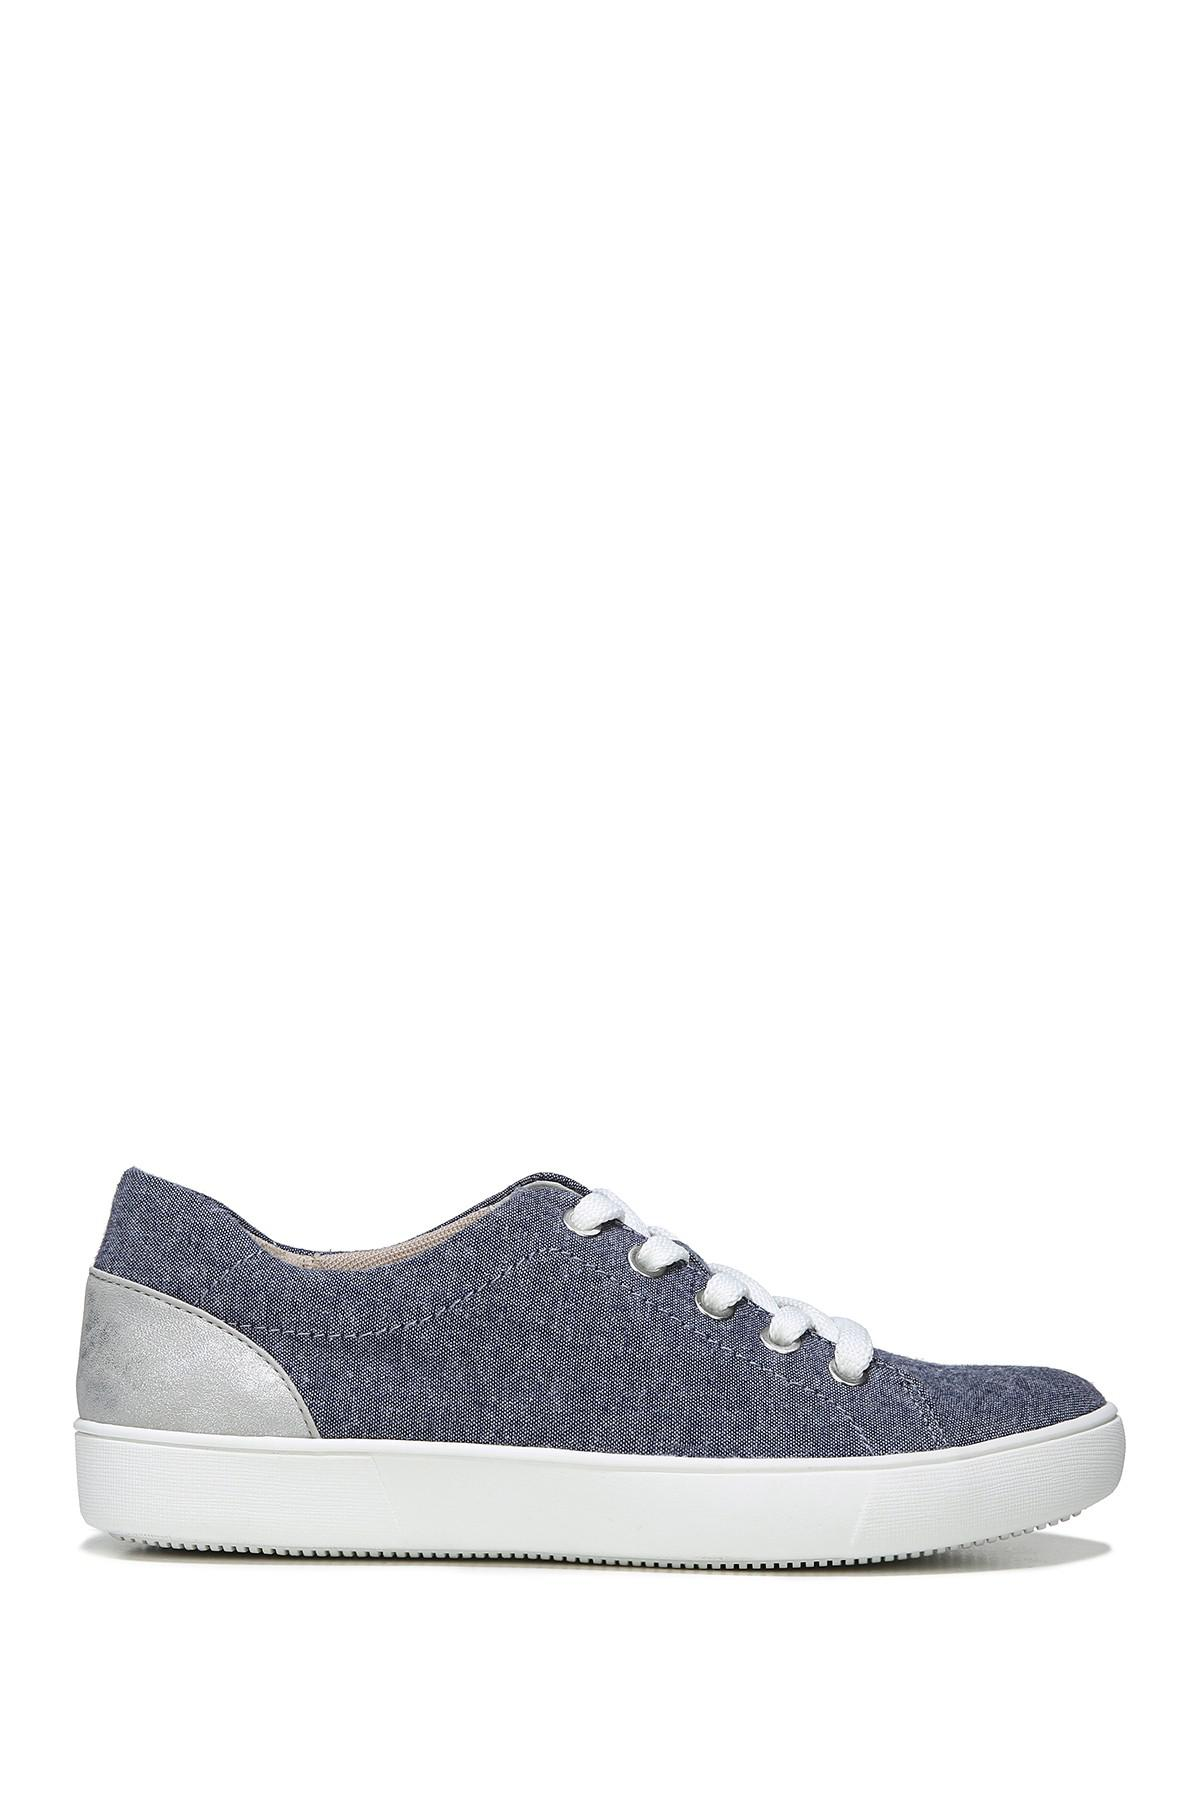 Naturalizer Porsha Sneaker - Wide Width Available